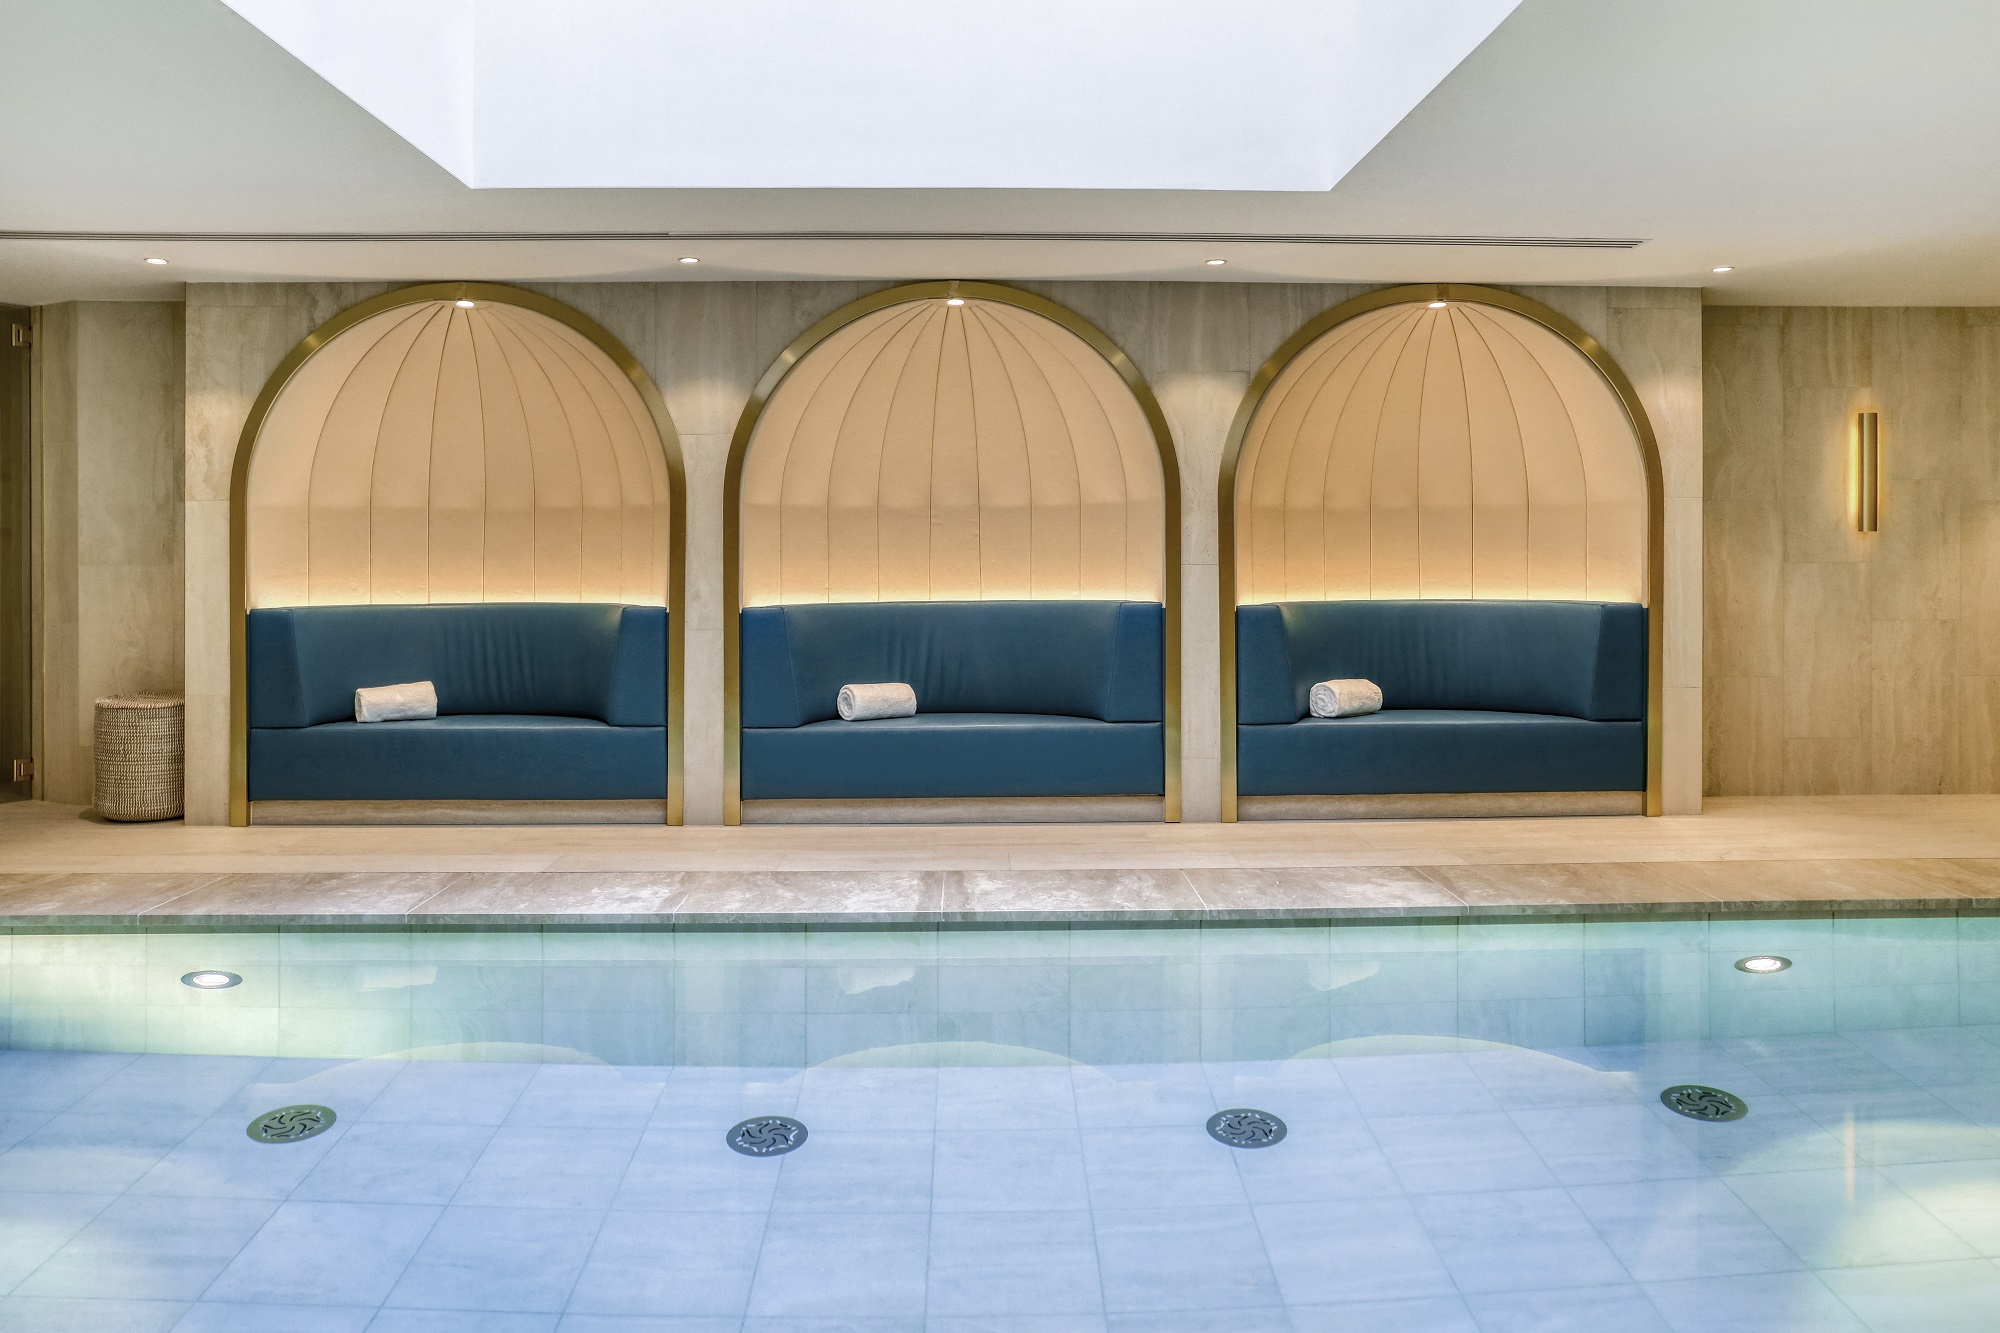 338/Vendome/Spa/maison_albar_hotels_le_vendome_spa_piscine_interieure.jpg